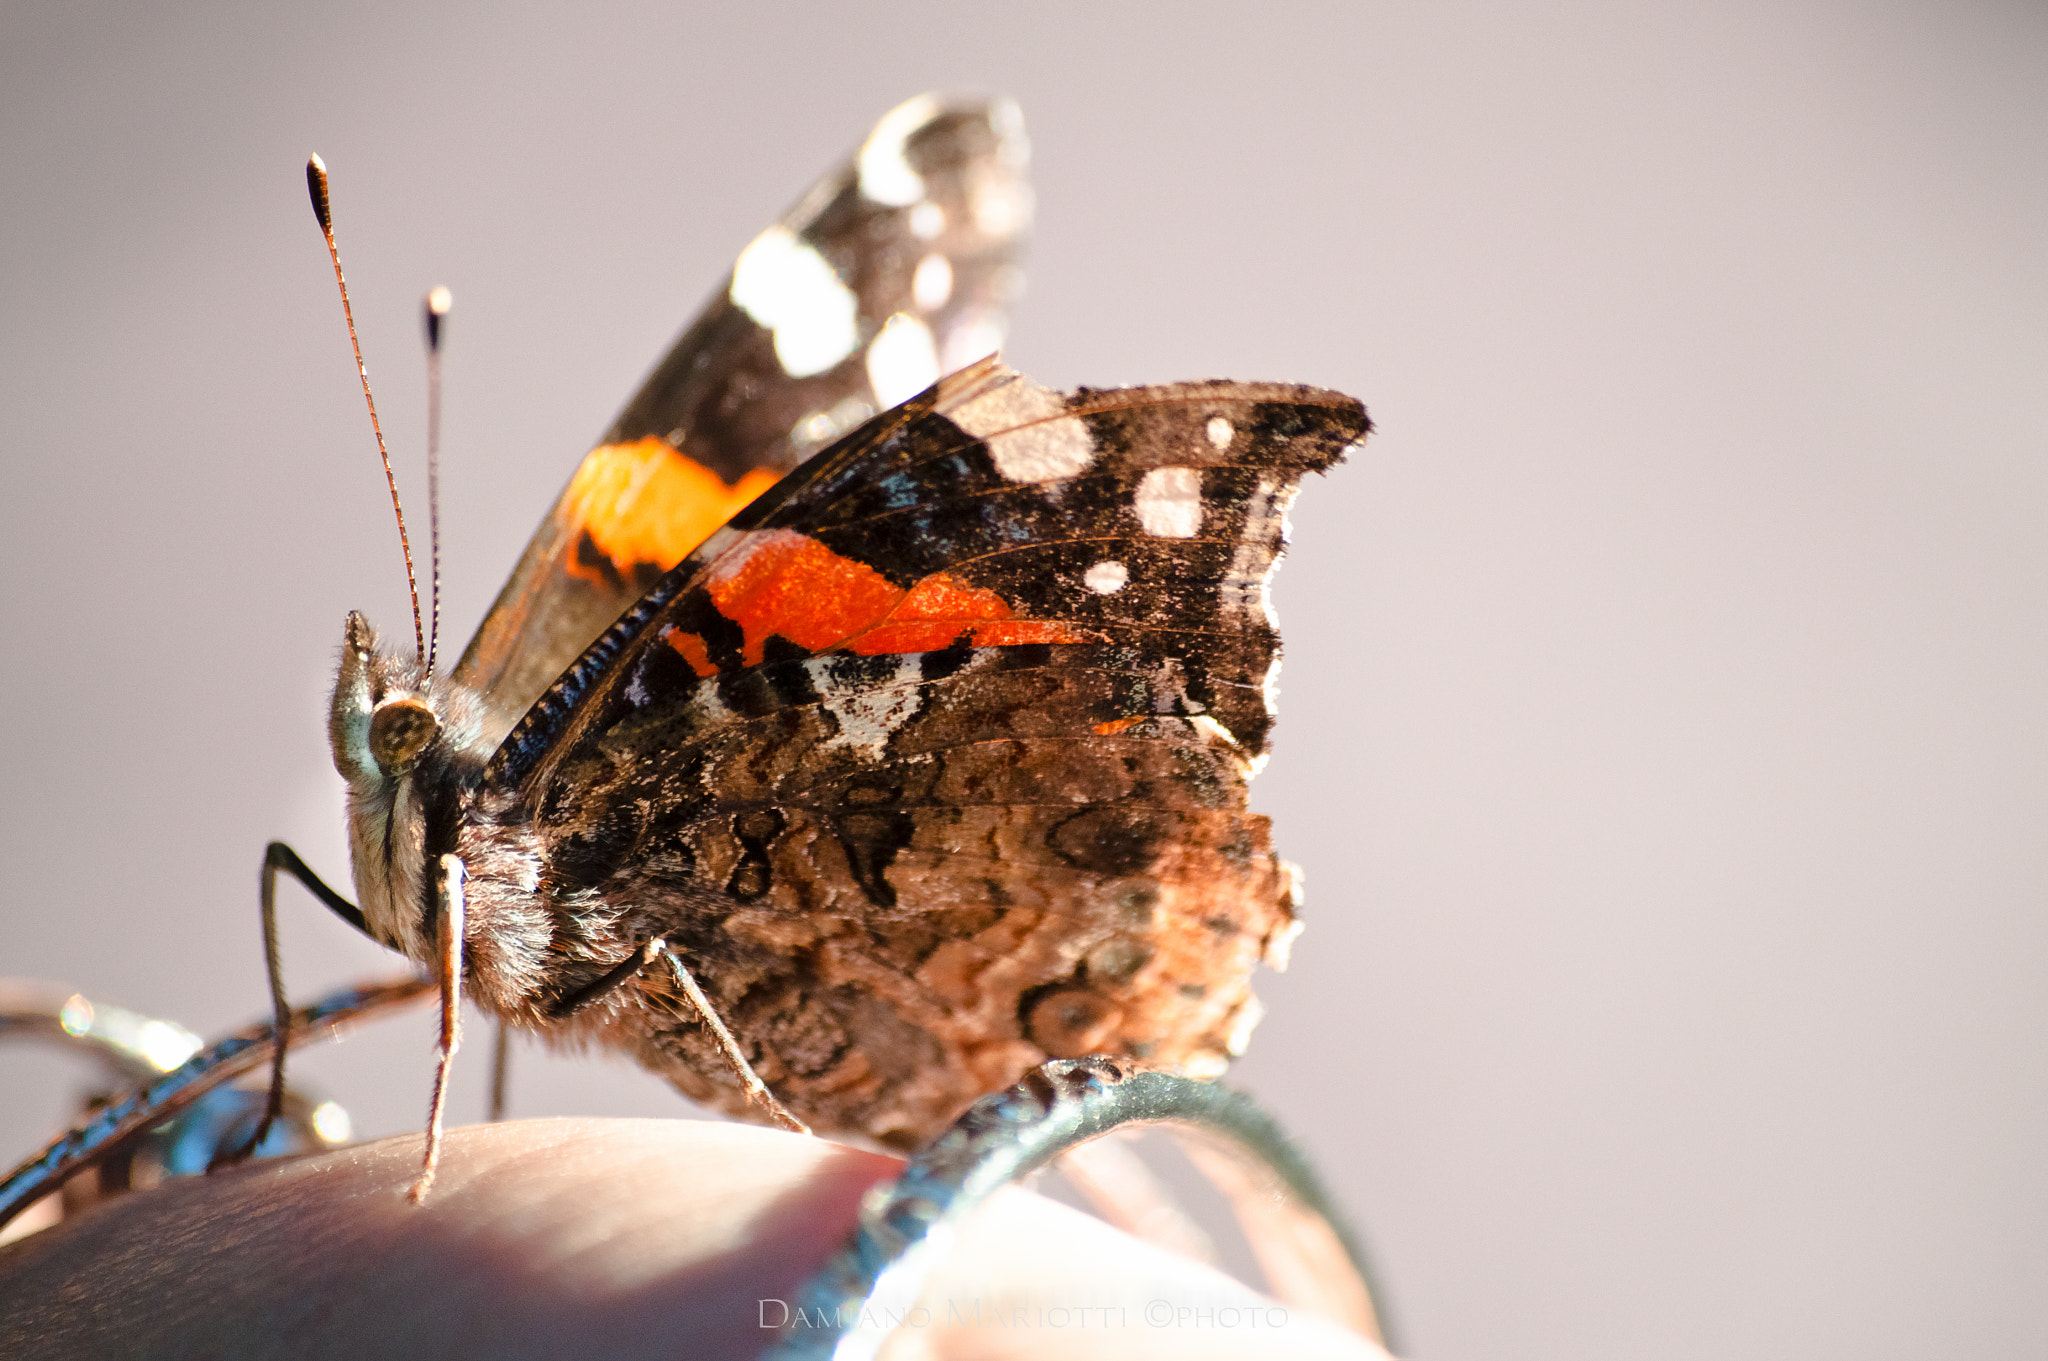 Photograph Tamed butterfly by Damiano Mariotti on 500px